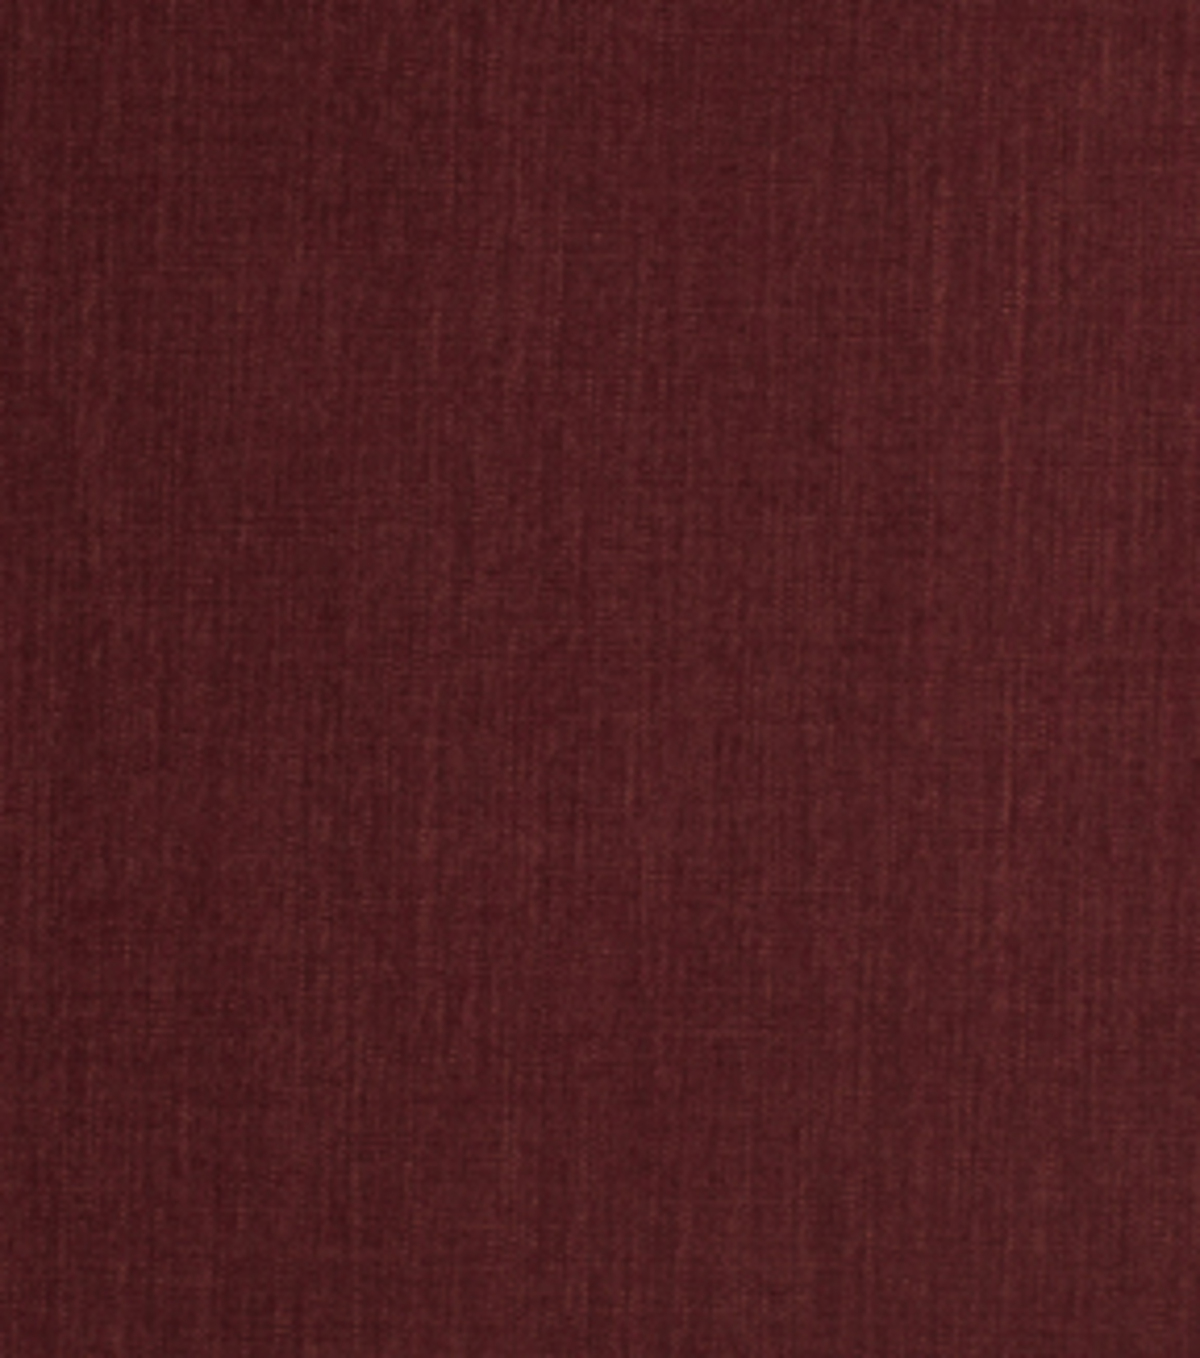 Home Decor 8\u0022x8\u0022 Fabric Swatch-Signature Series Media Merlot